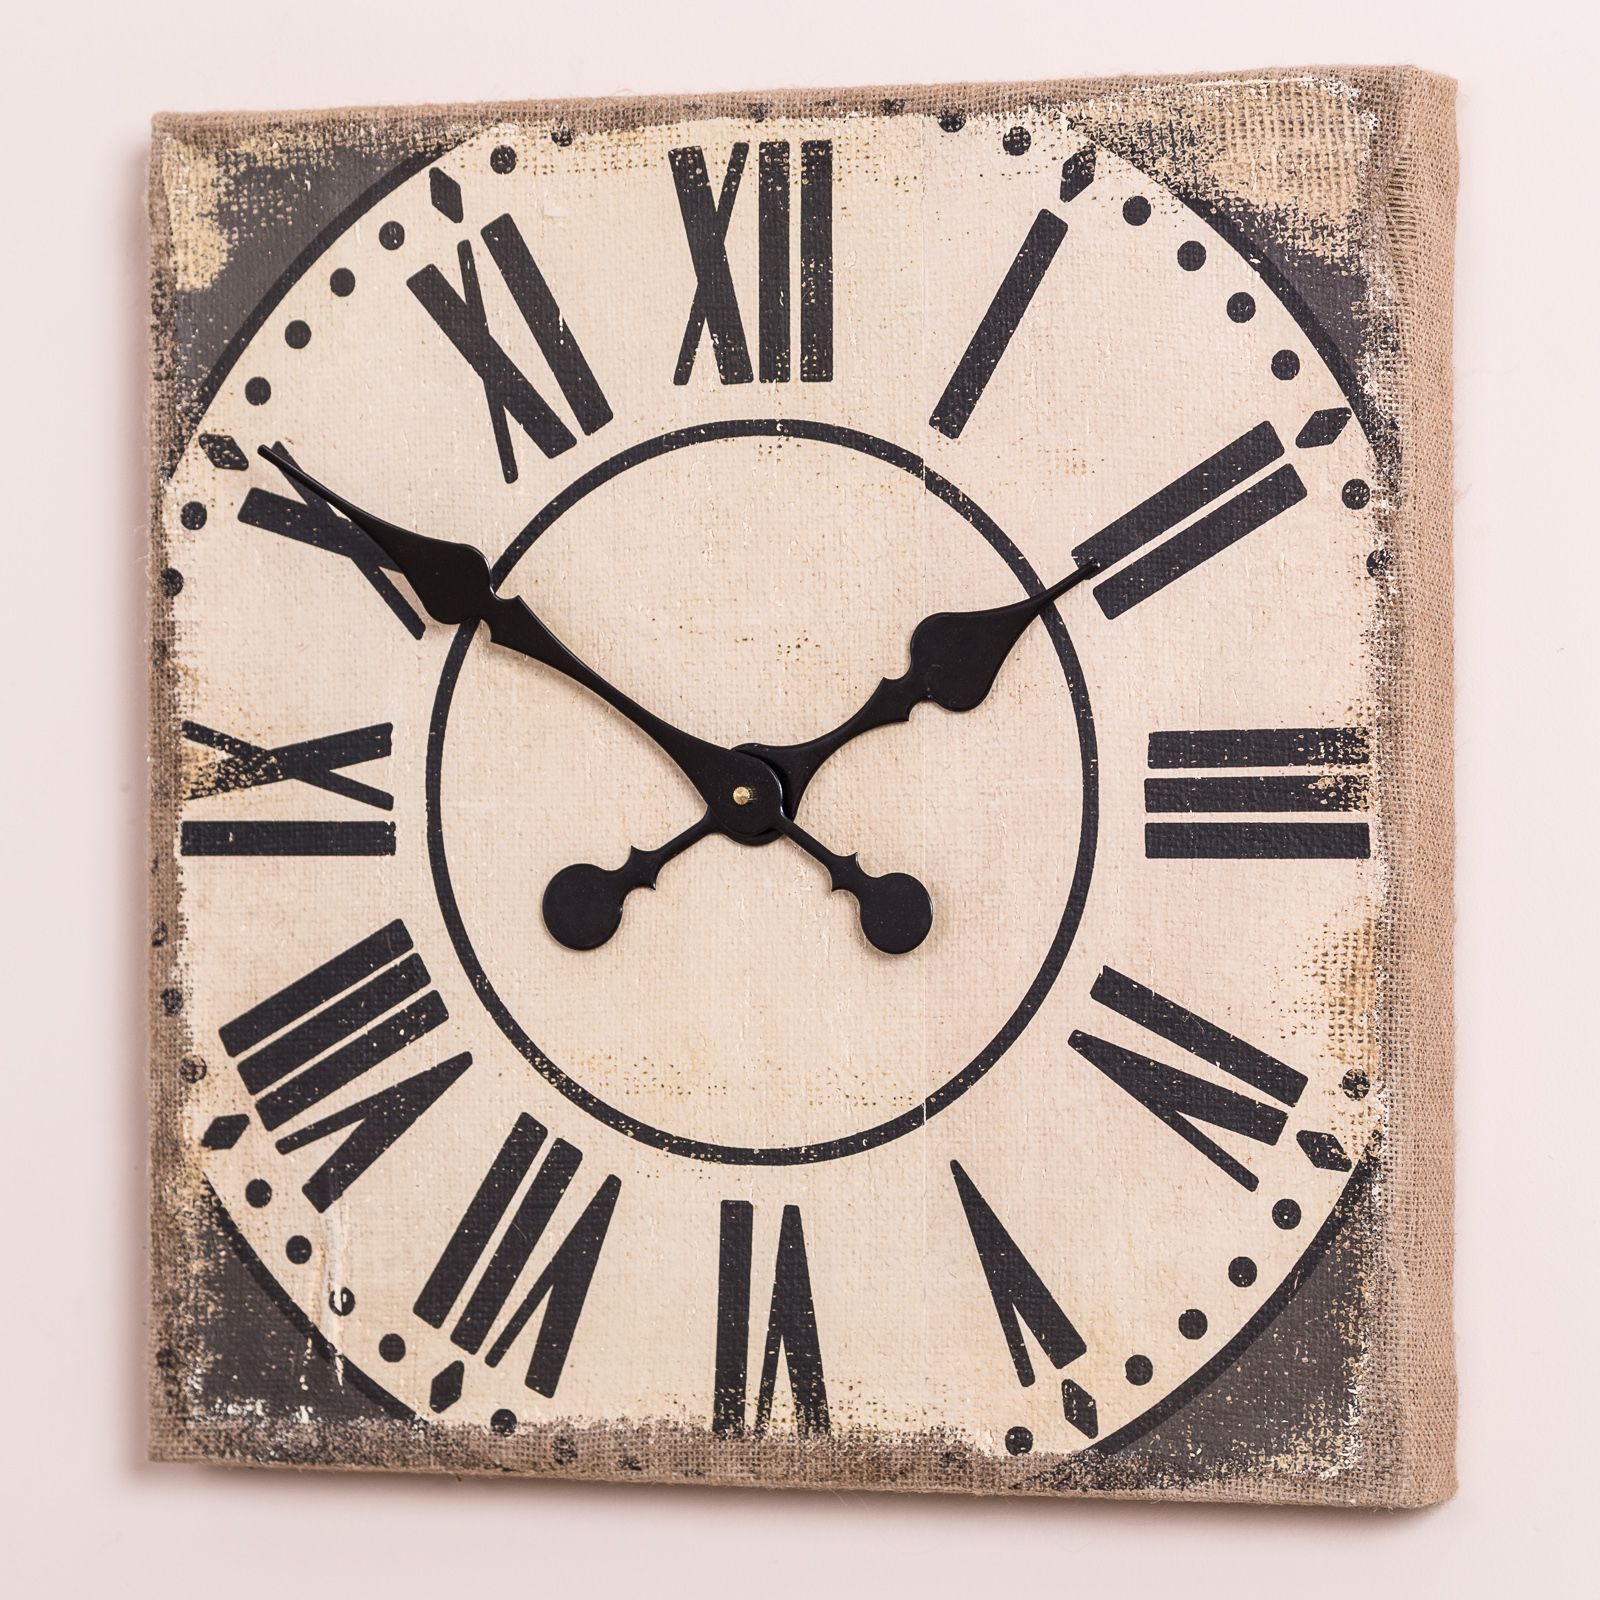 A quirky square shape wall clock with a rustic distressed finish a quirky square shape wall clock with a rustic distressed finish amipublicfo Image collections